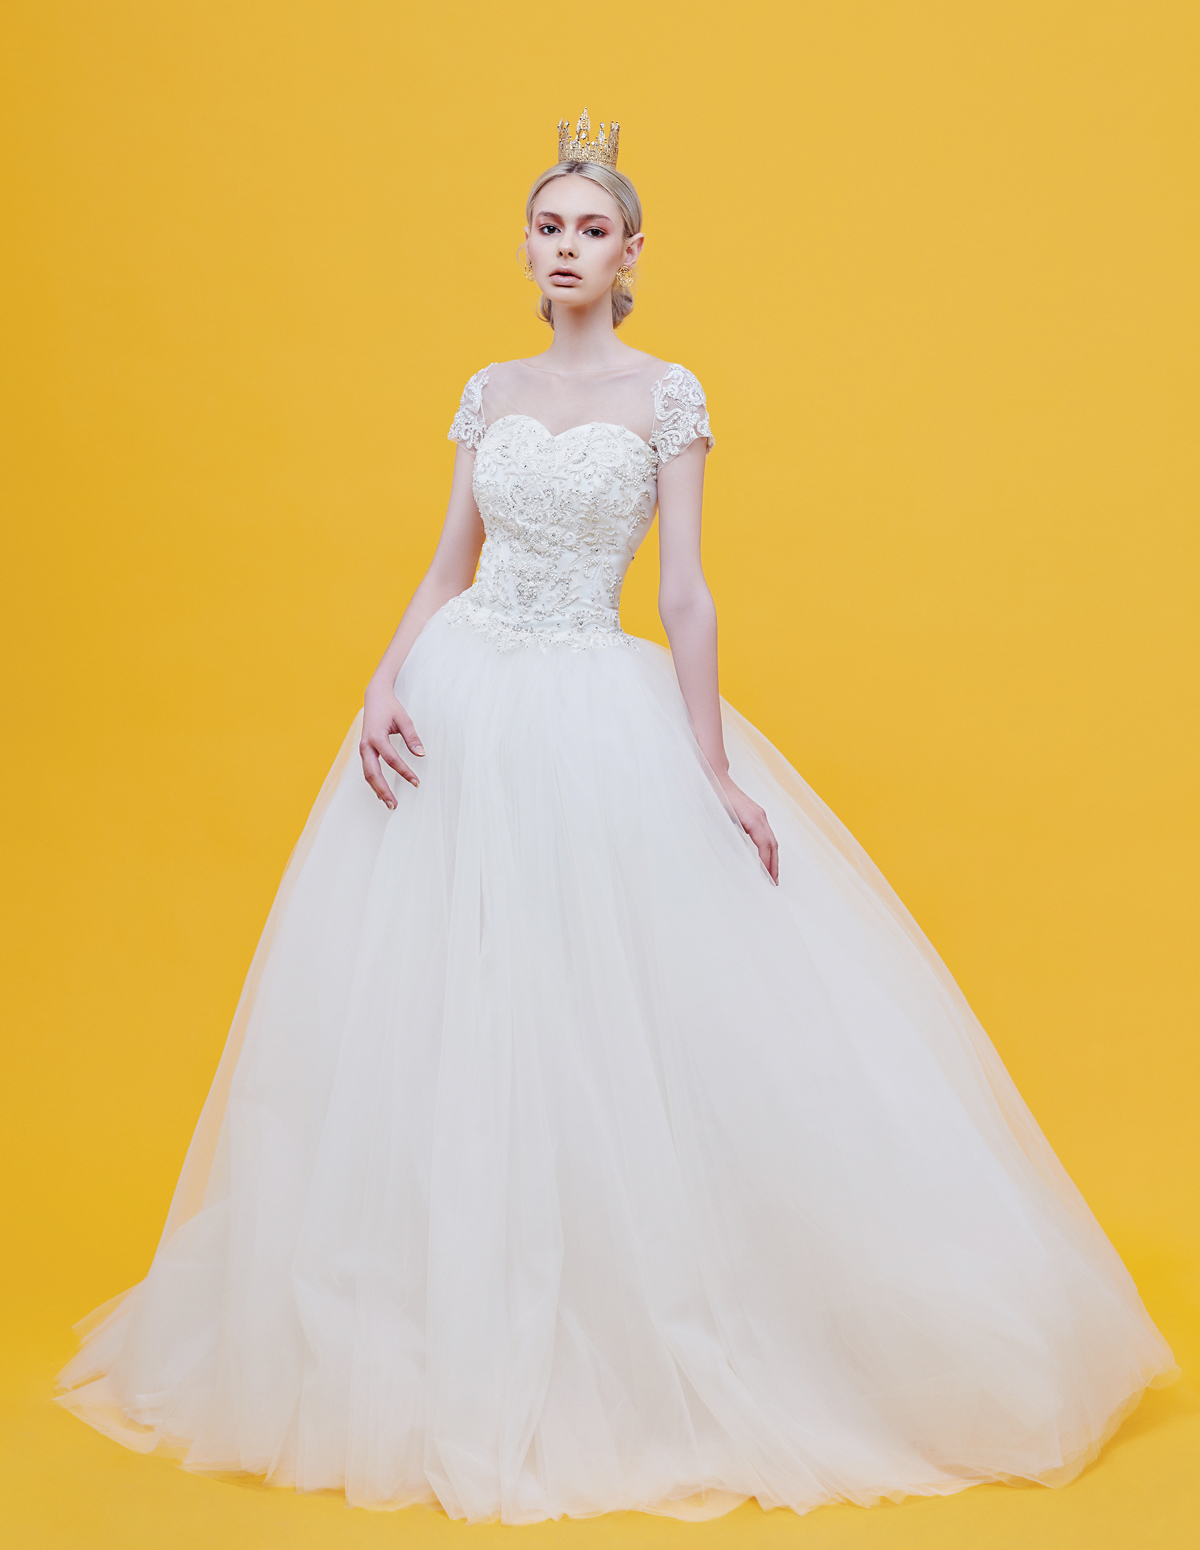 We Offer A Select Collection Of Wedding Dresses Through Our Bridal Boutique Gowns Are Available For Purchase Or Rental